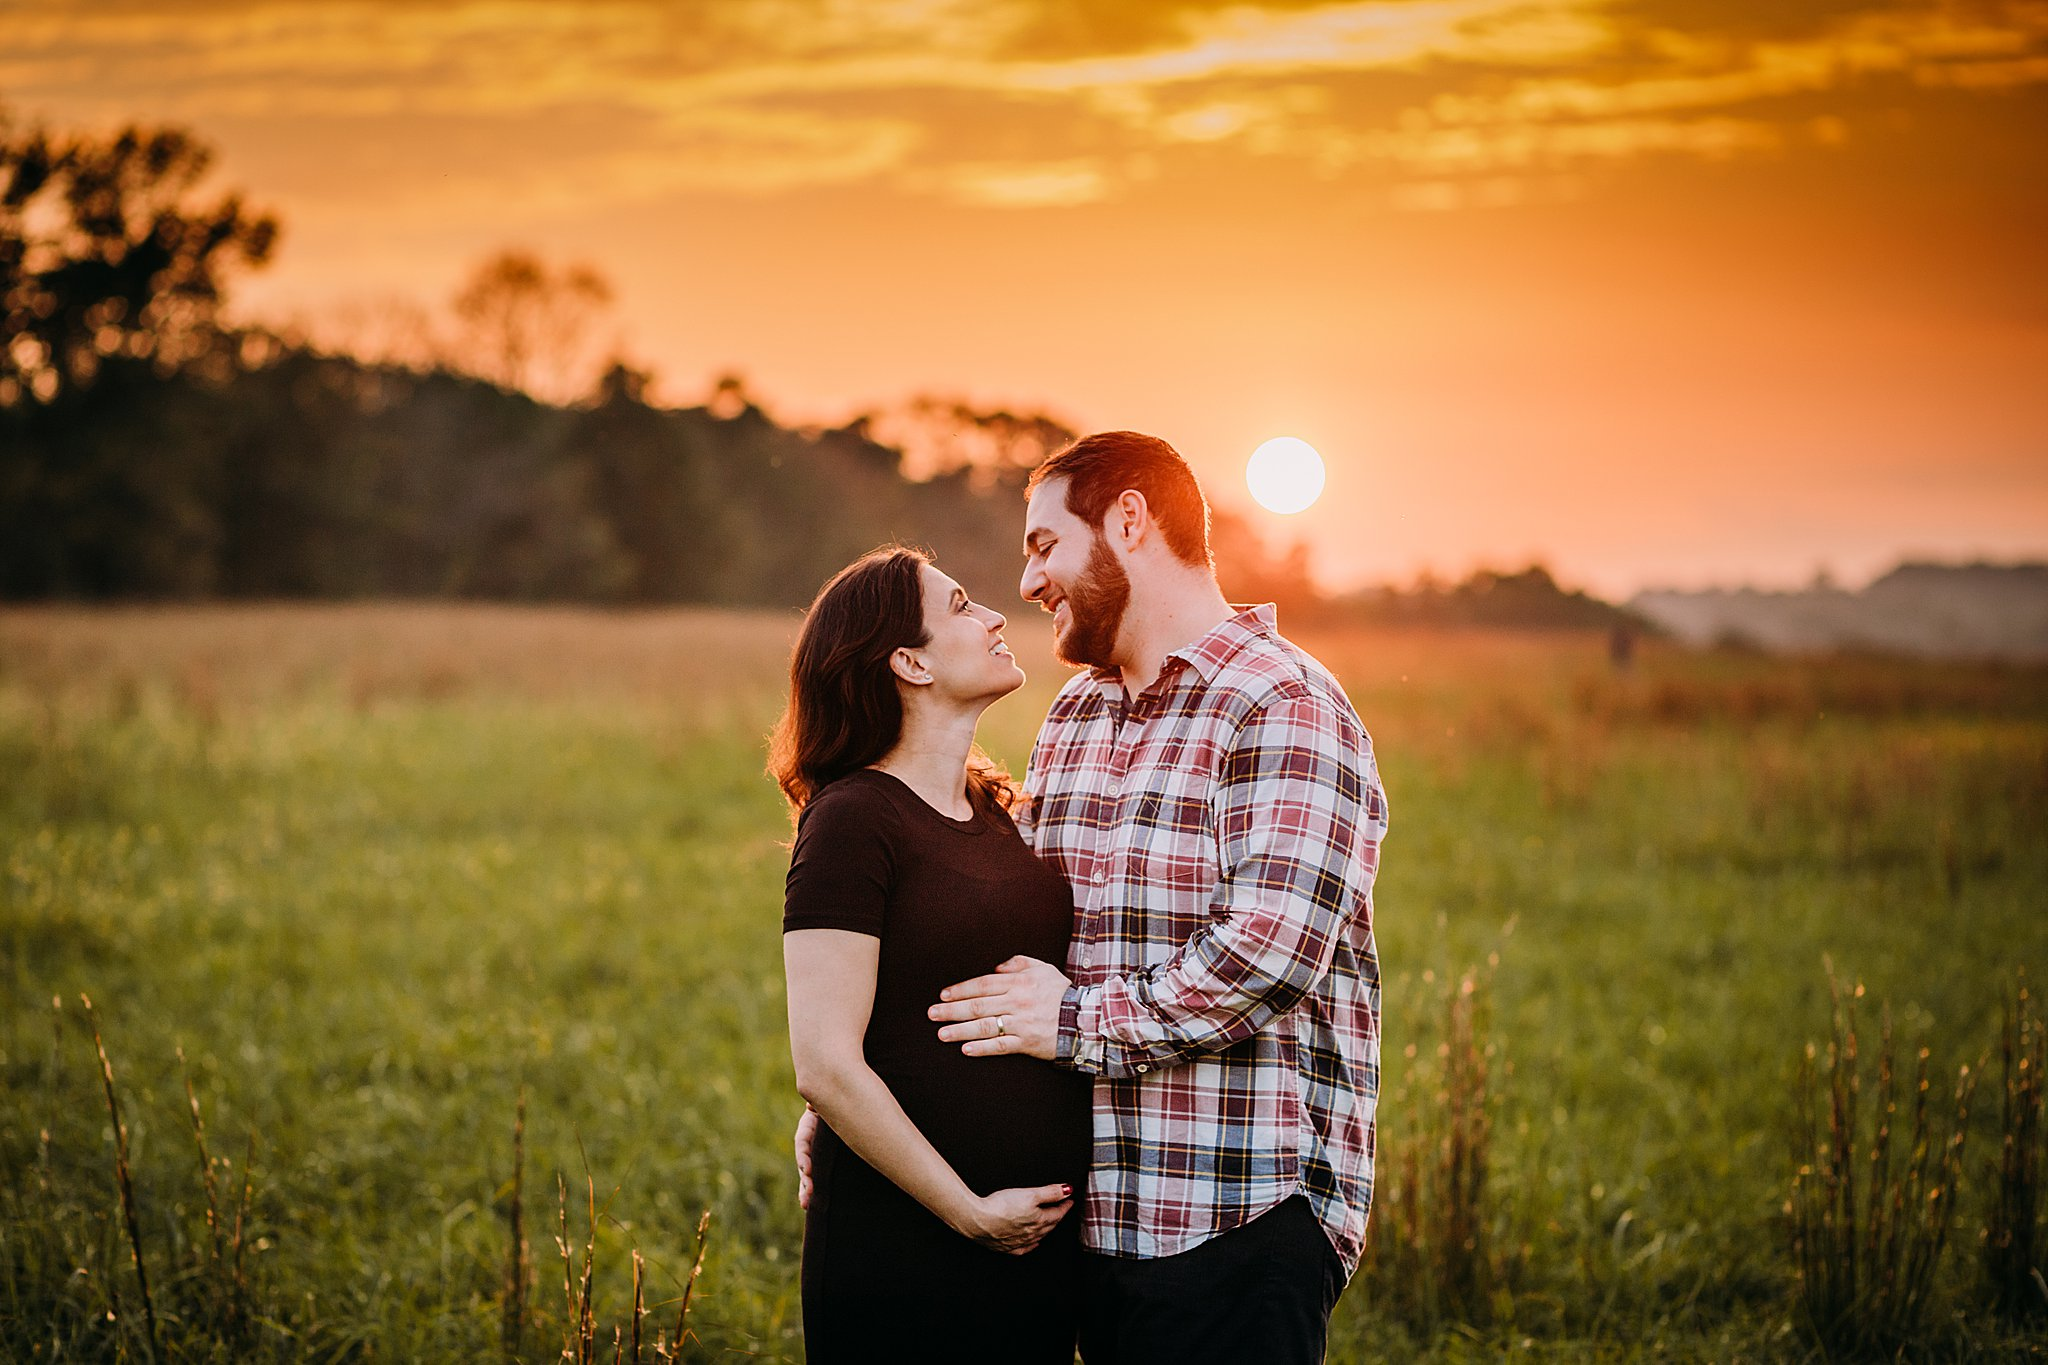 Bucks County maternity photographer